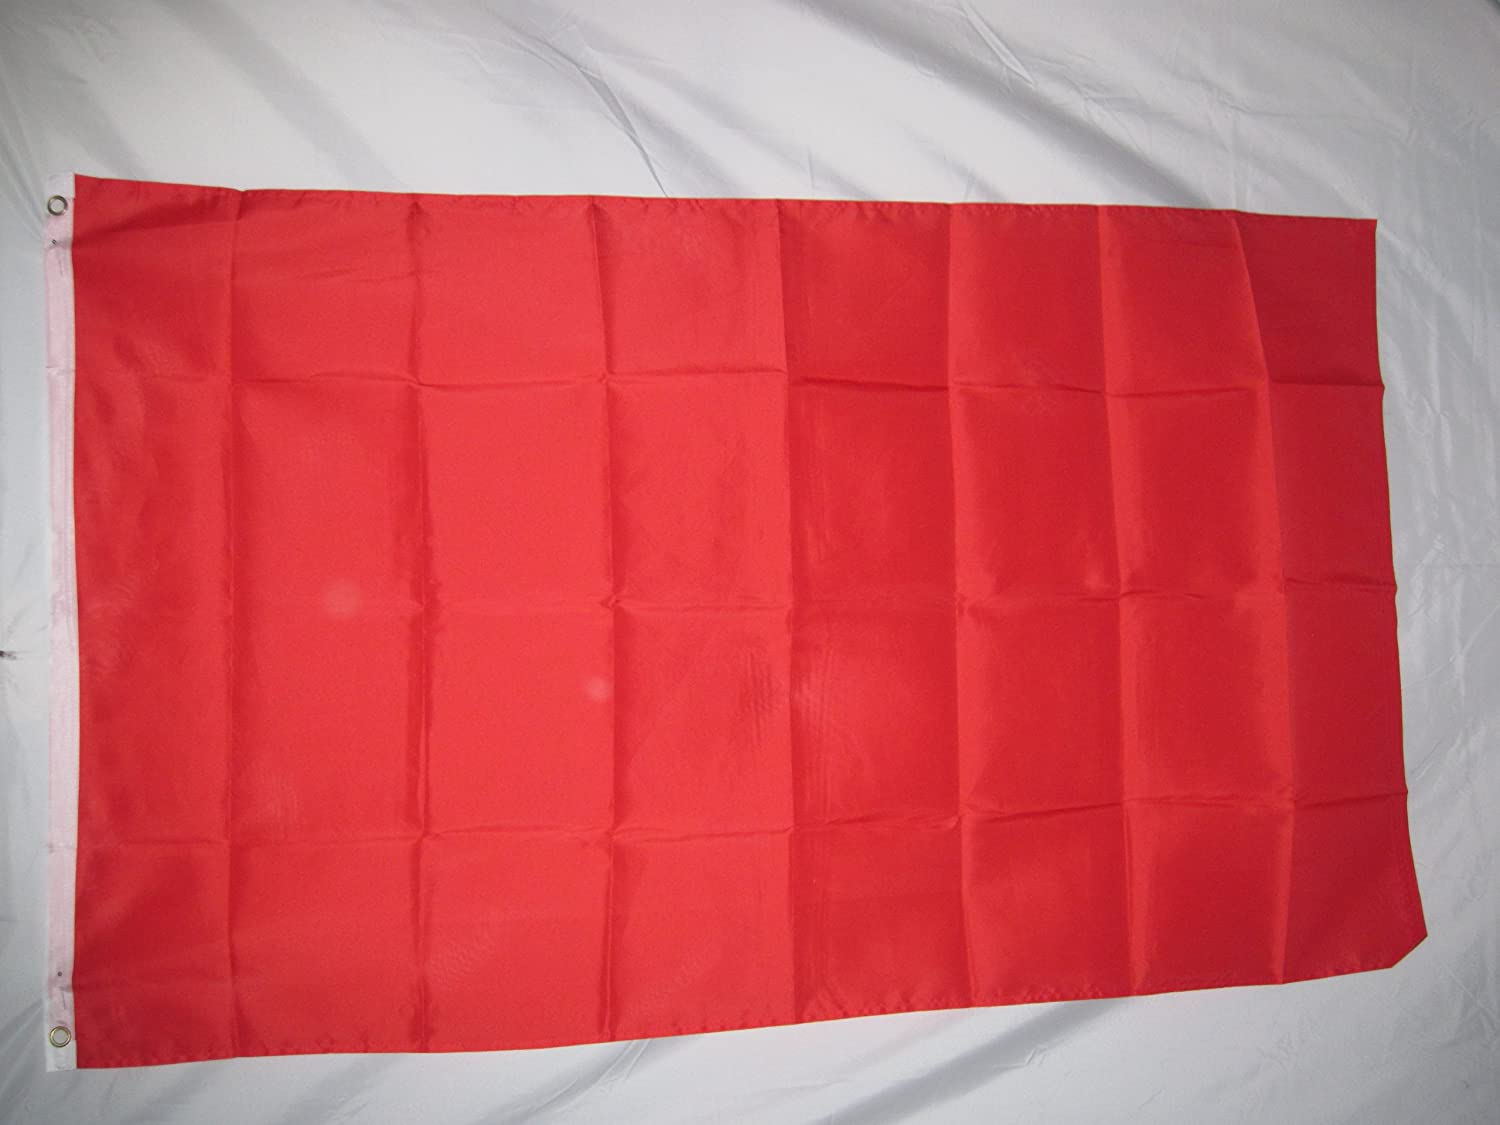 Solid Red Color Flag Plain Red Flags with Brass Grommets /& More colors